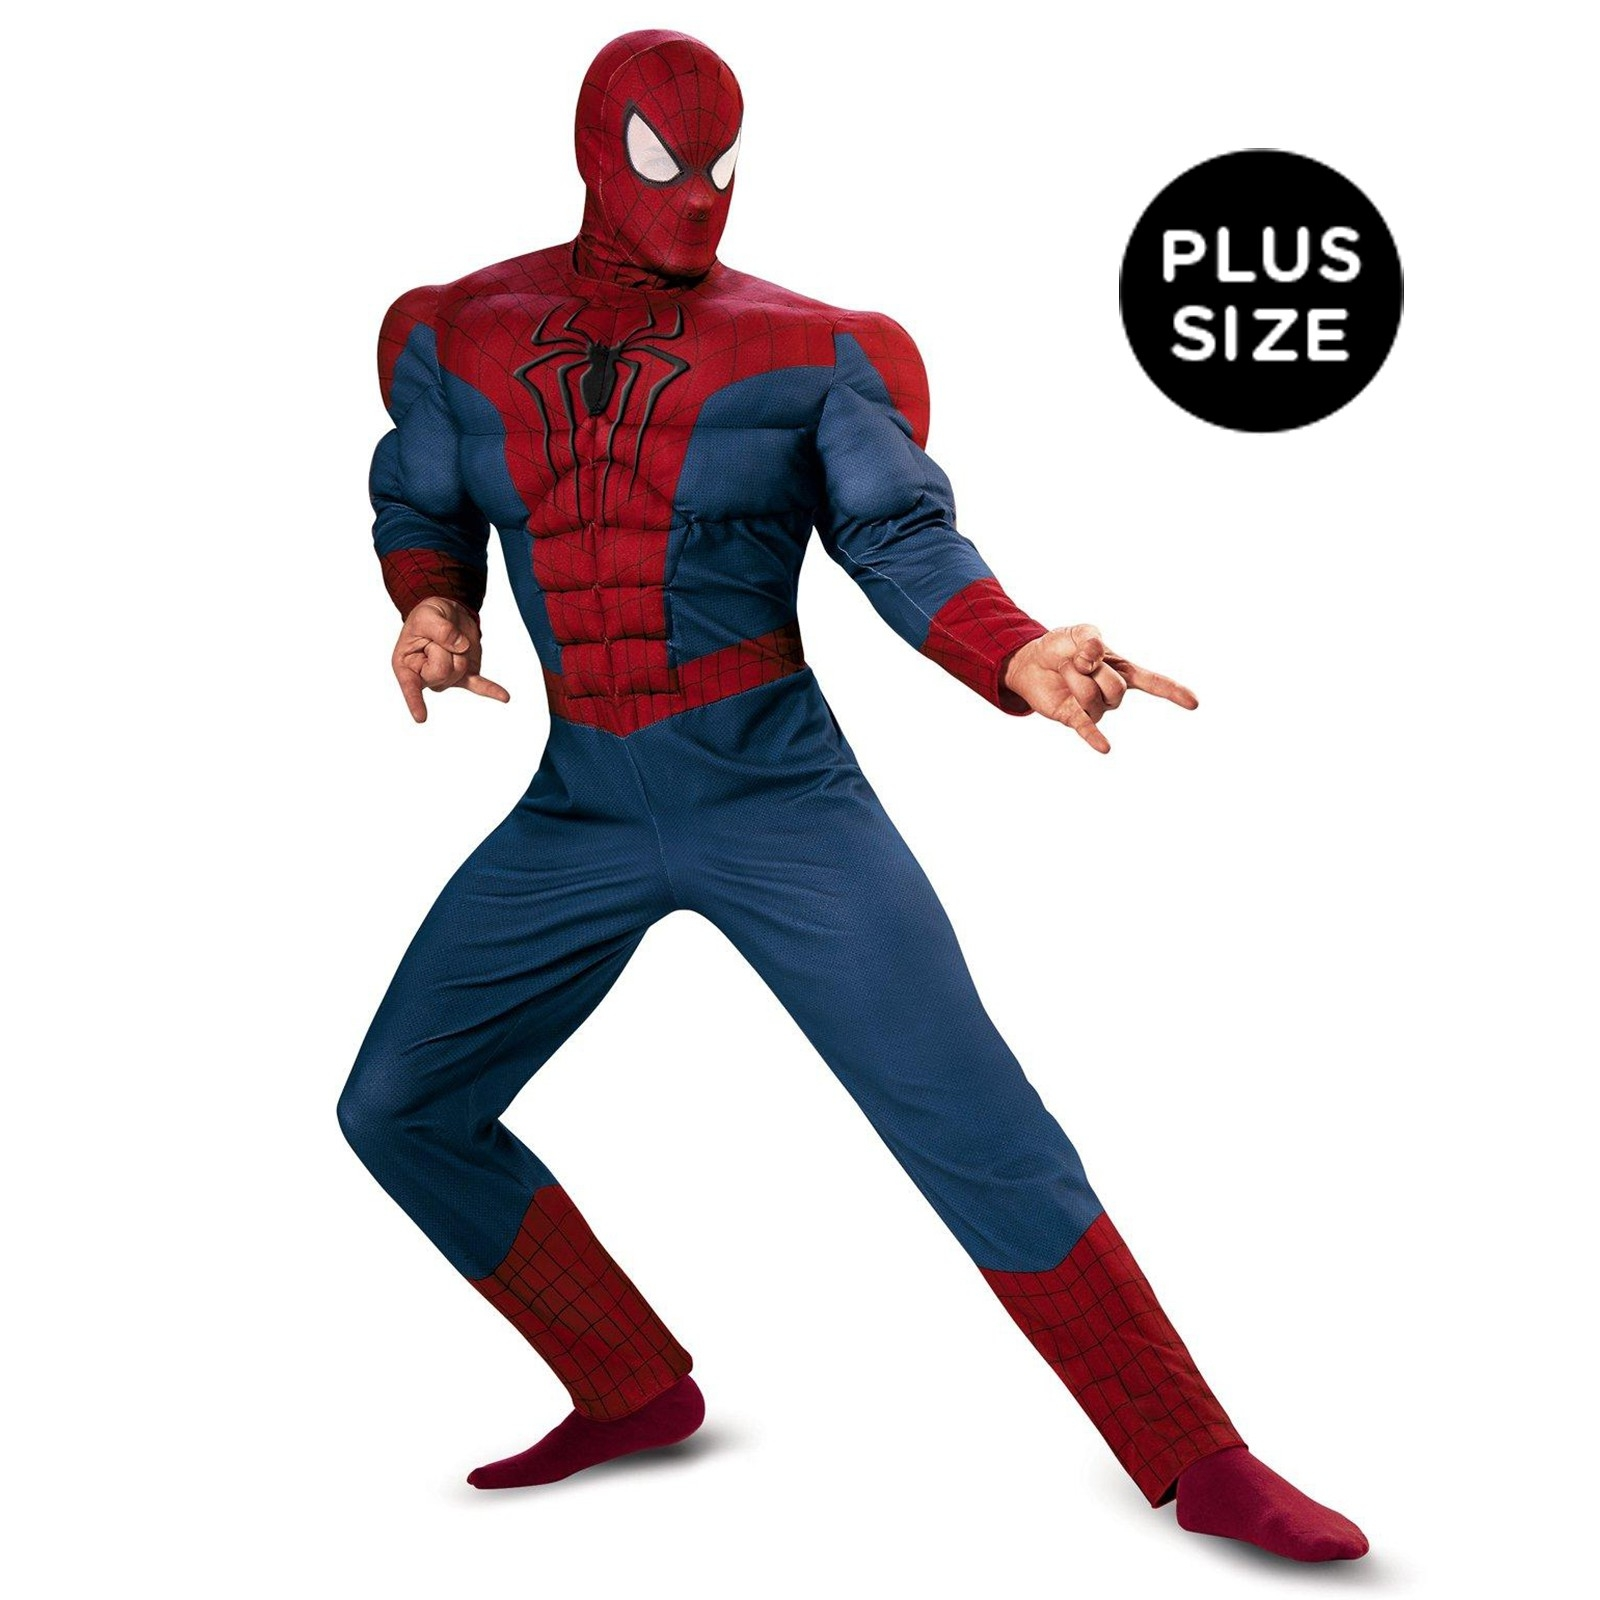 wall size coloring pages - spider man movie 2 adult muscle chest plus size costume